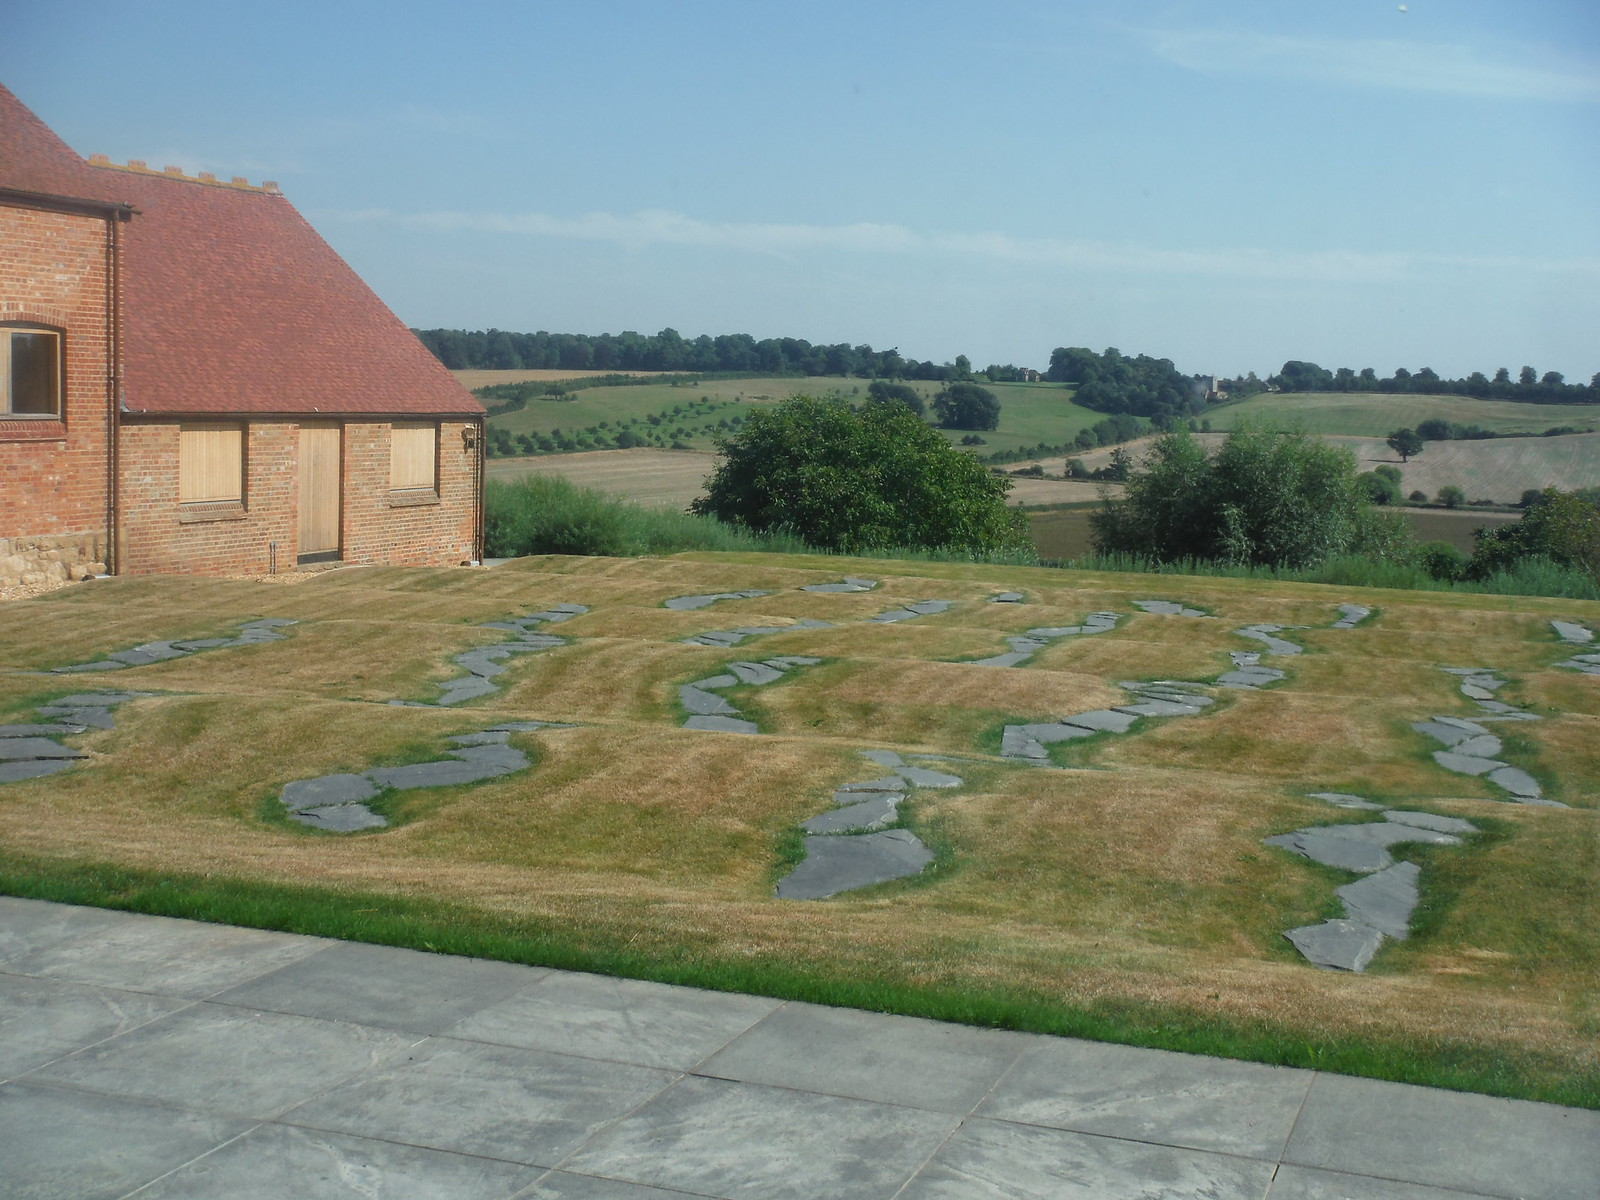 Brotherlines, Richard Long, 2011, Windmill Hill Archive, Waddesdon Estate SWC 192 Haddenham to Aylesbury (via Waddesdon)